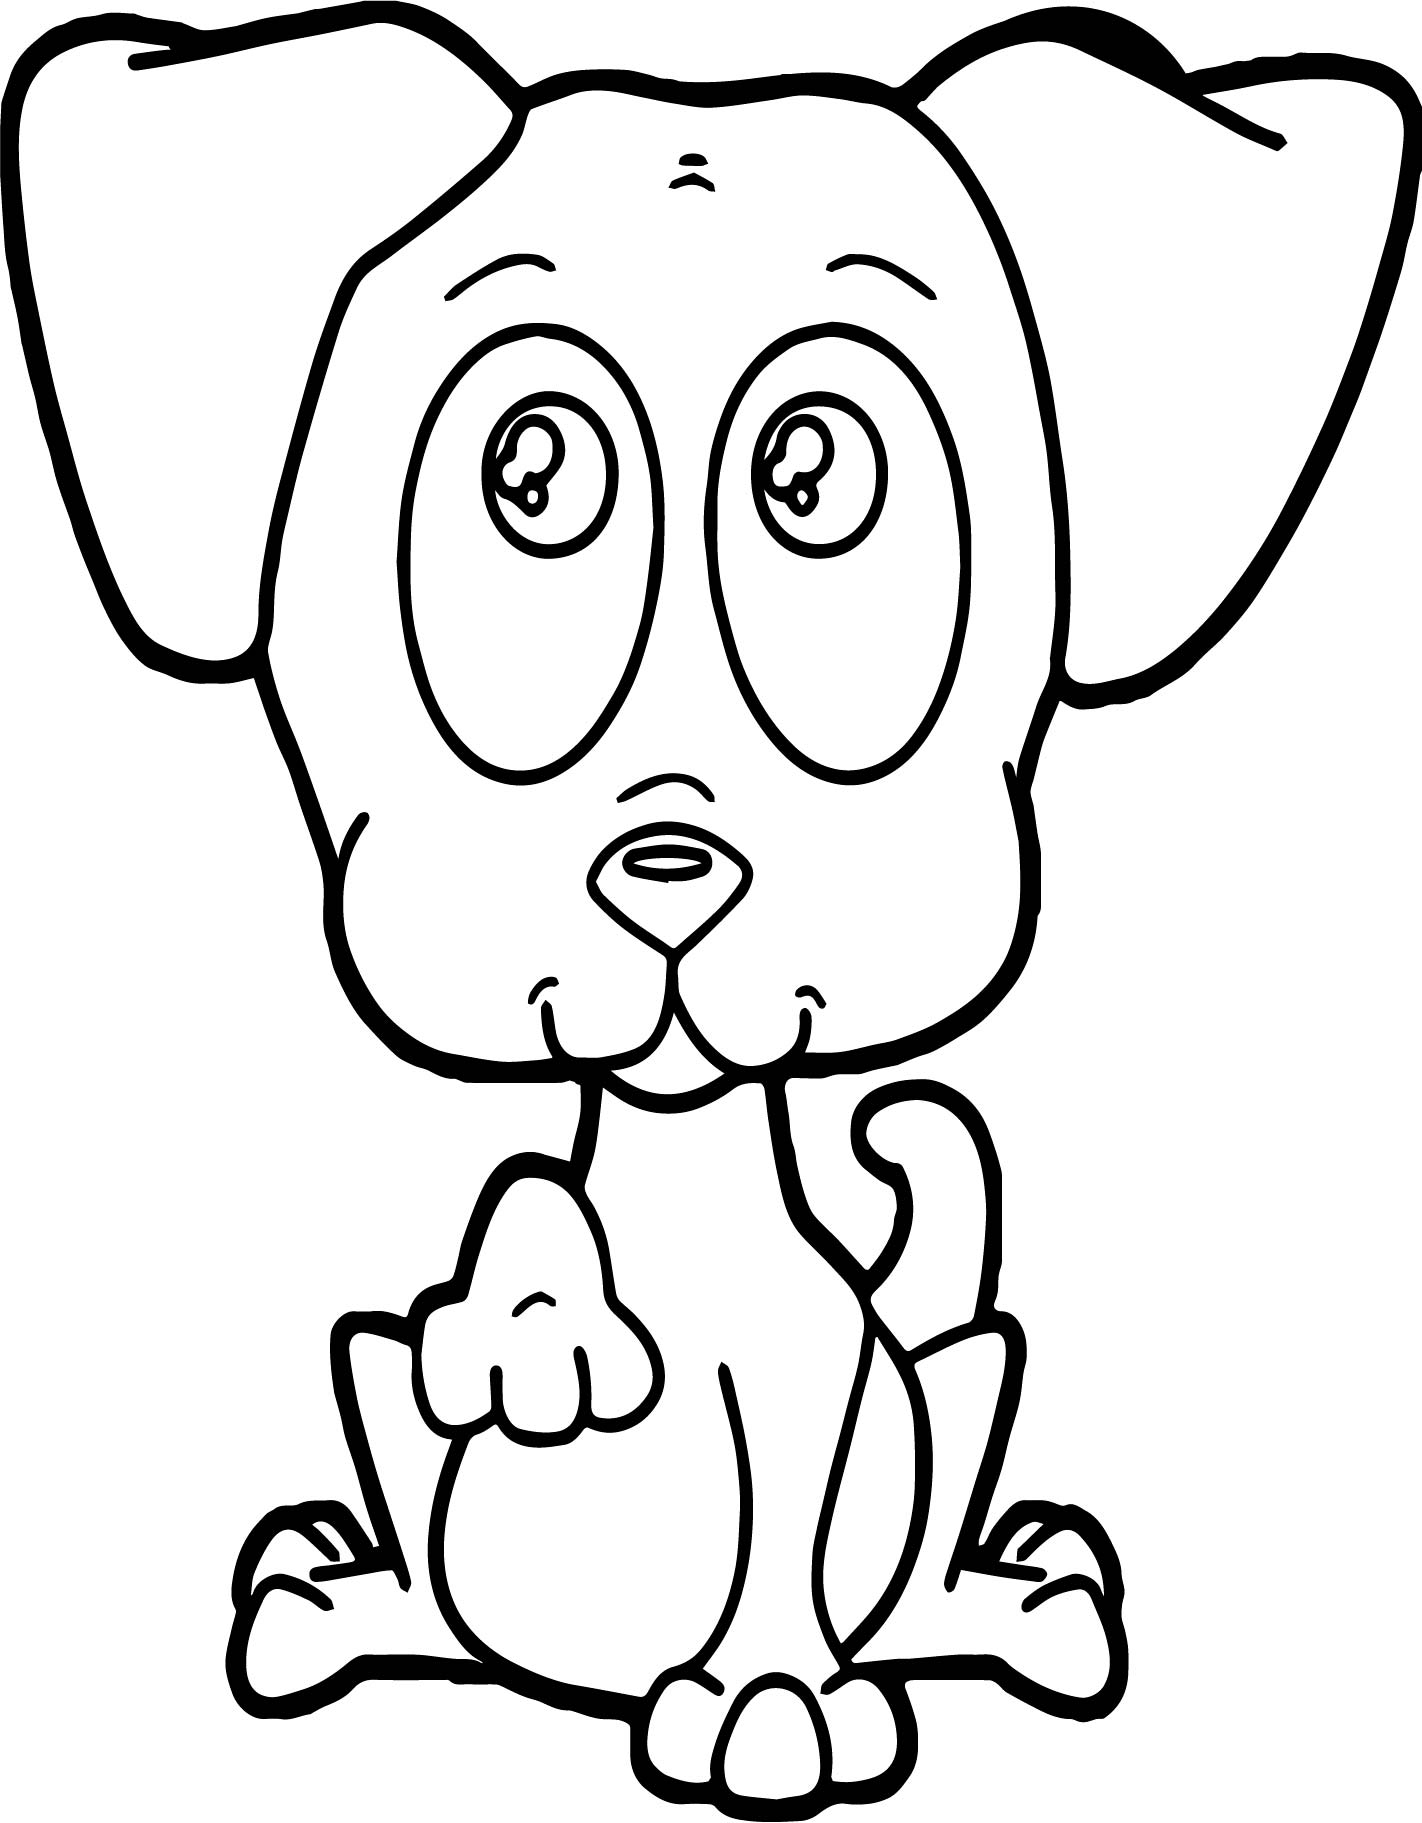 Cute puppy begging puppy dog coloring page for Cute puppies coloring pages